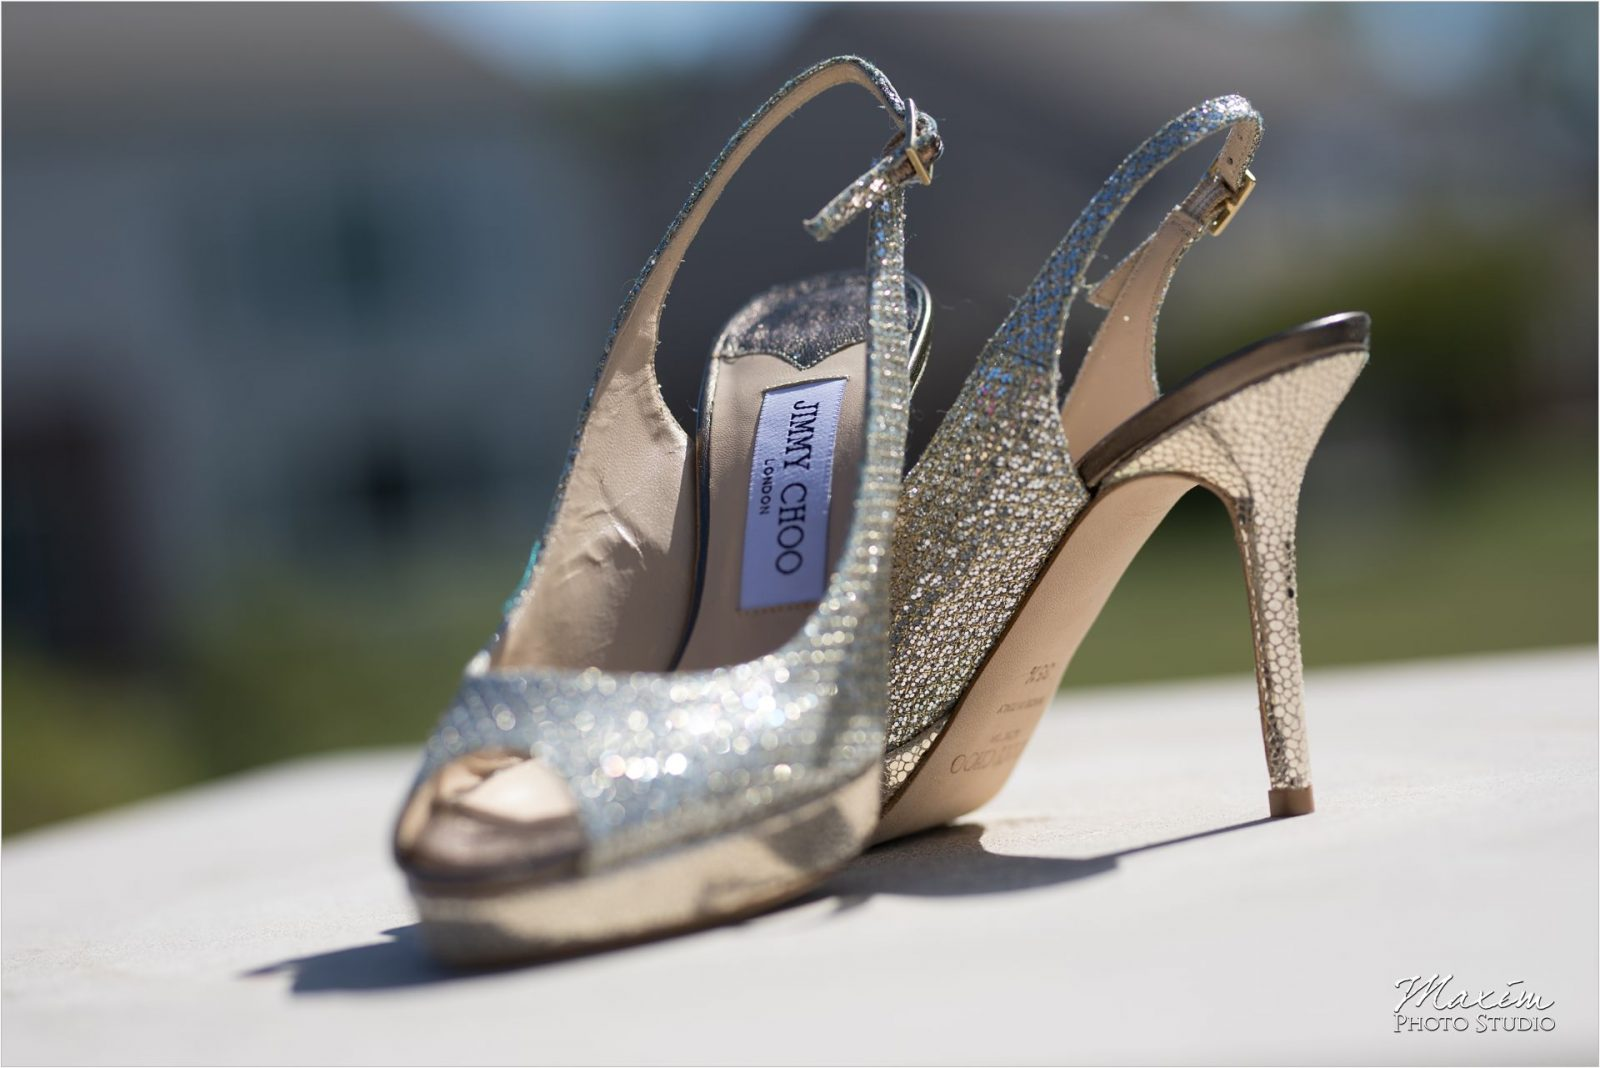 Jimmy Choo Shoes Hindu Wedding Reception Country Club of the North